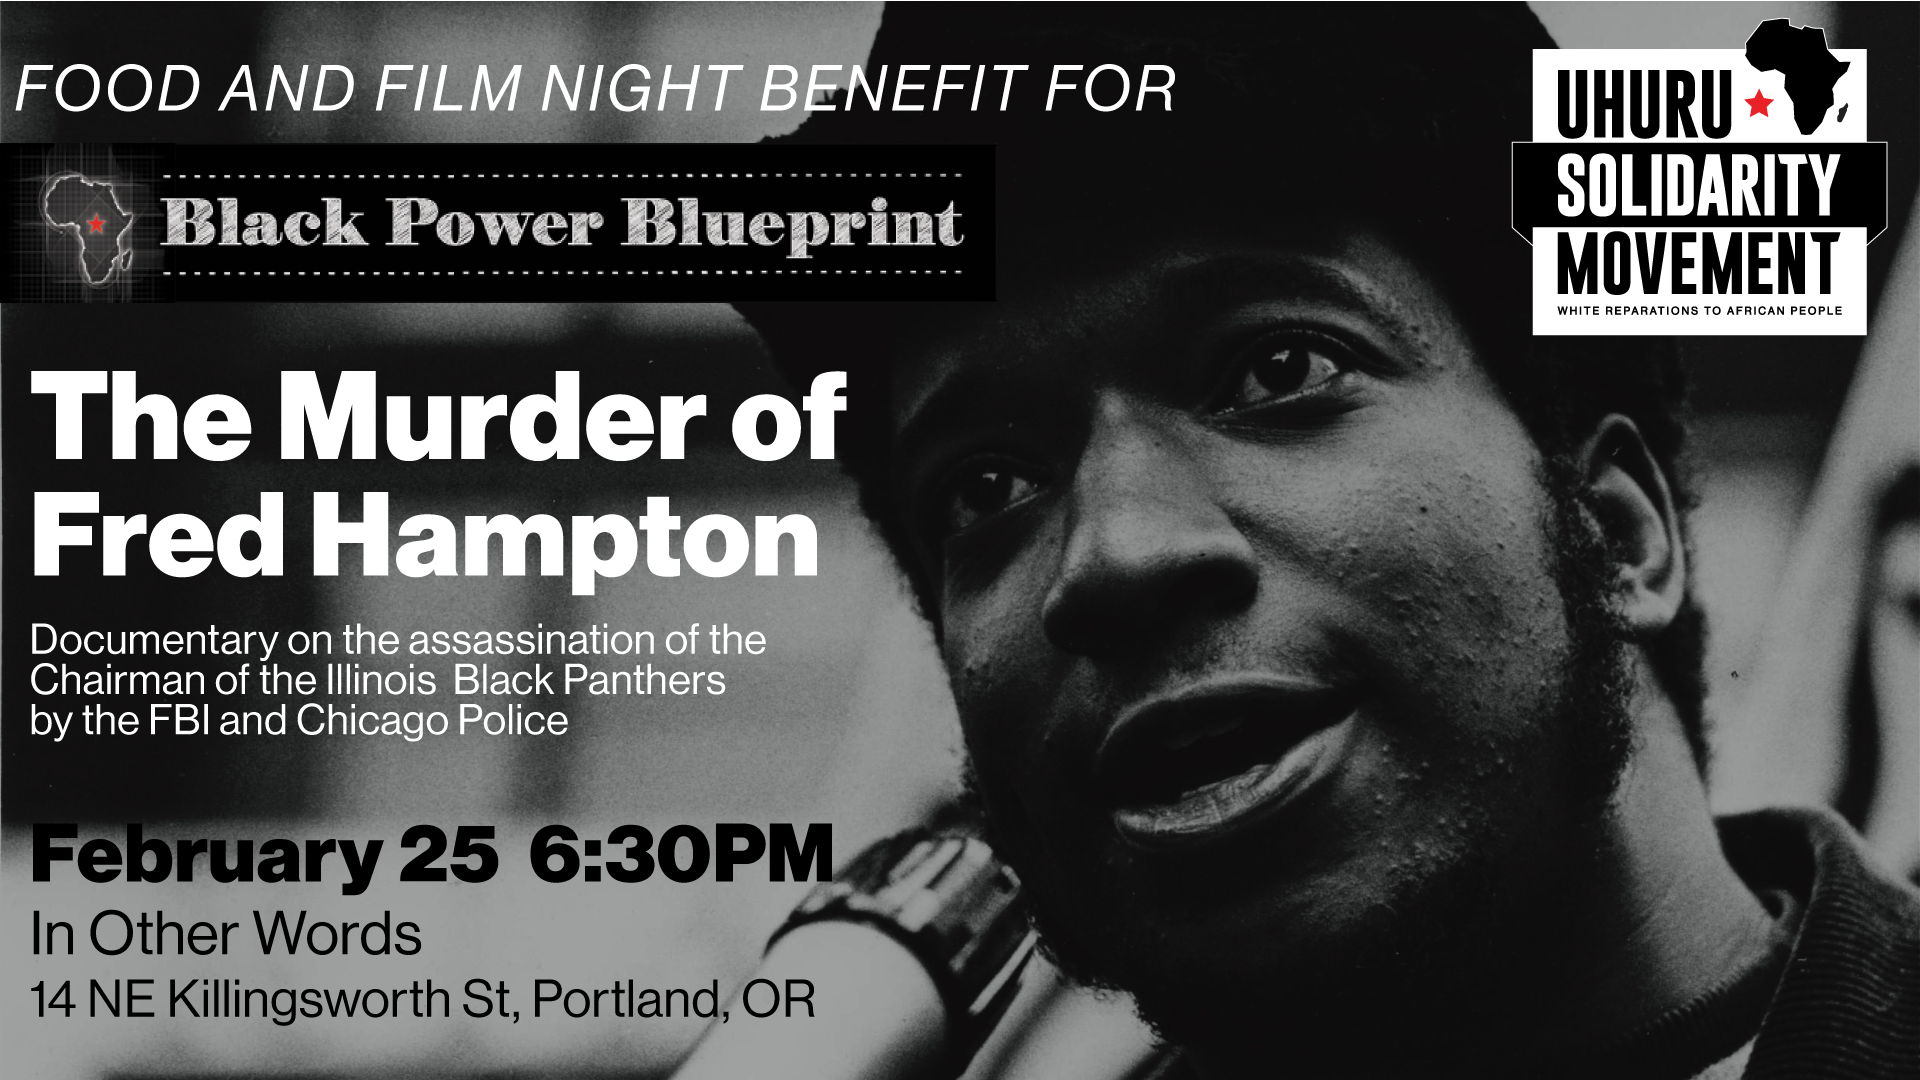 Usm portland presents murder of fred hampton food and film night this an uhuru solidarity movement usm film night open to all usm is an international organization of white people formed by accountable to malvernweather Choice Image